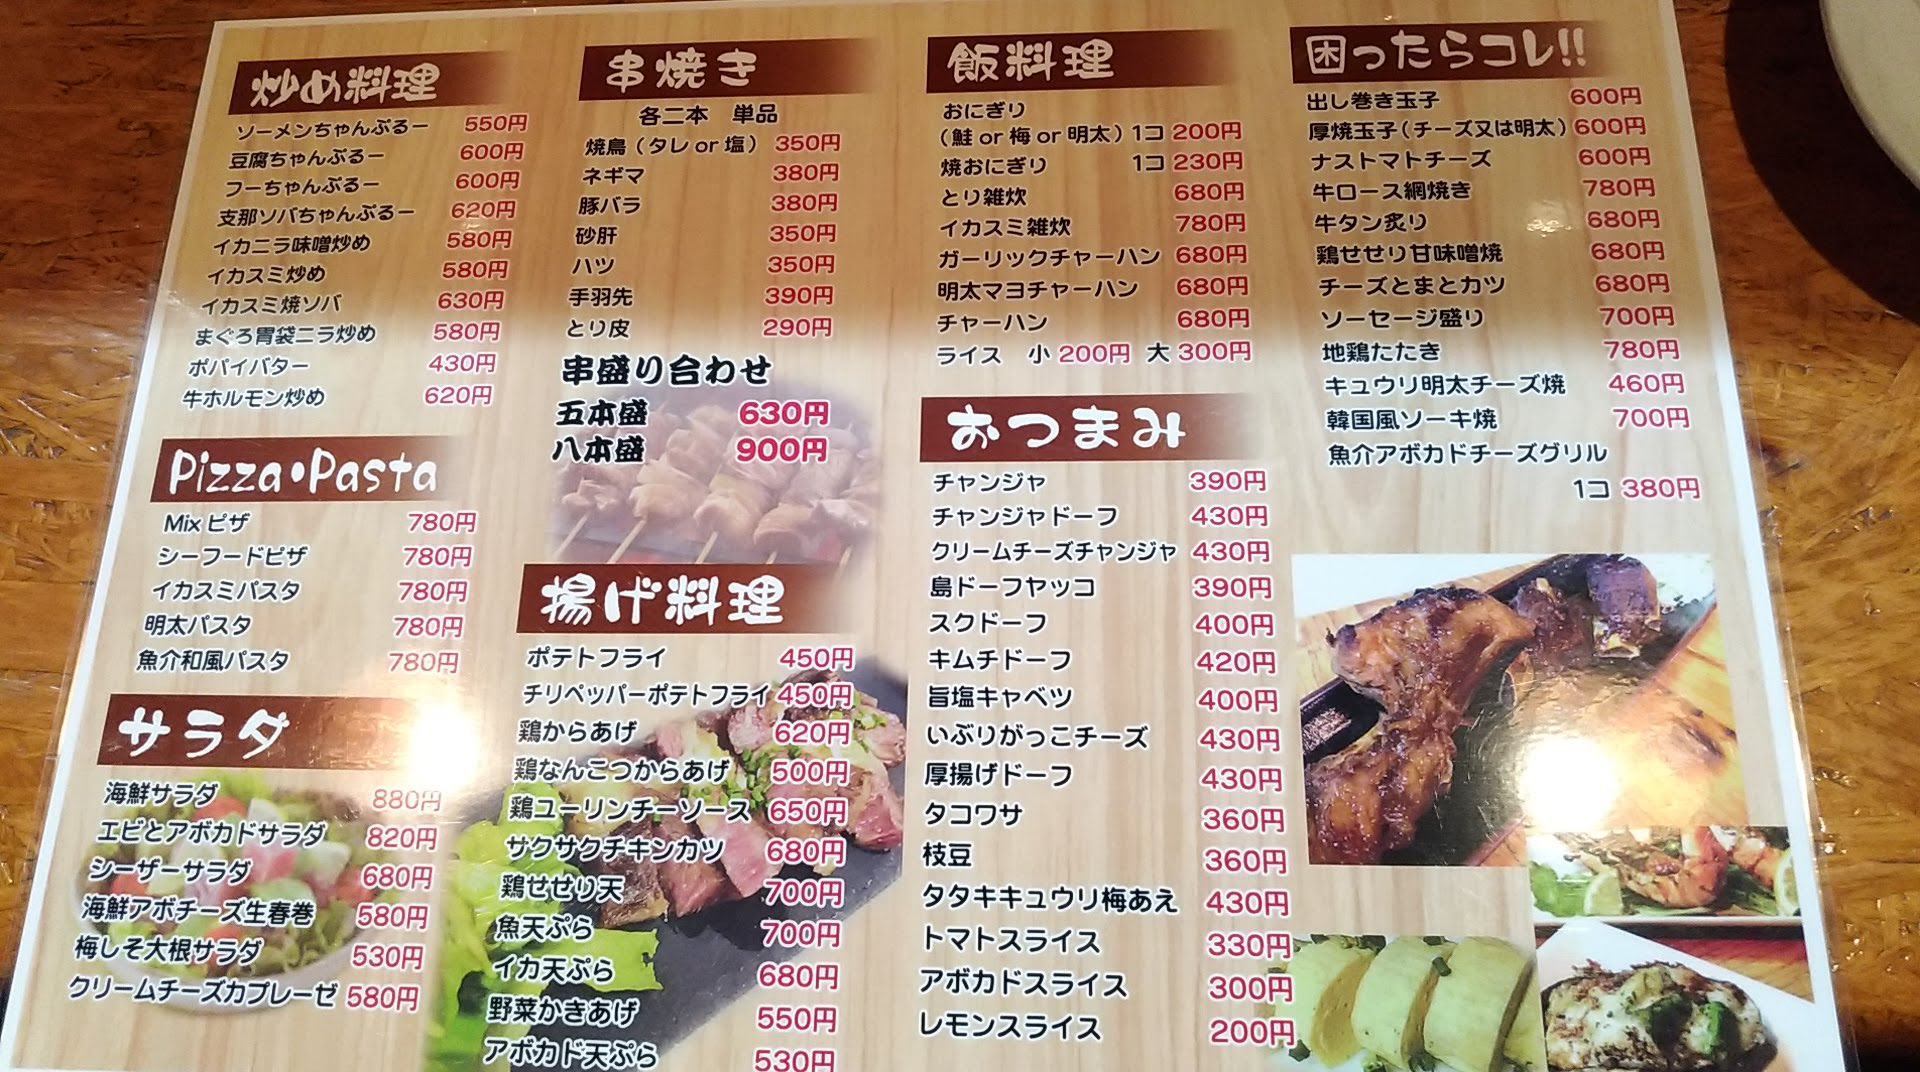 menu of seafood tavern Kaikyou 2